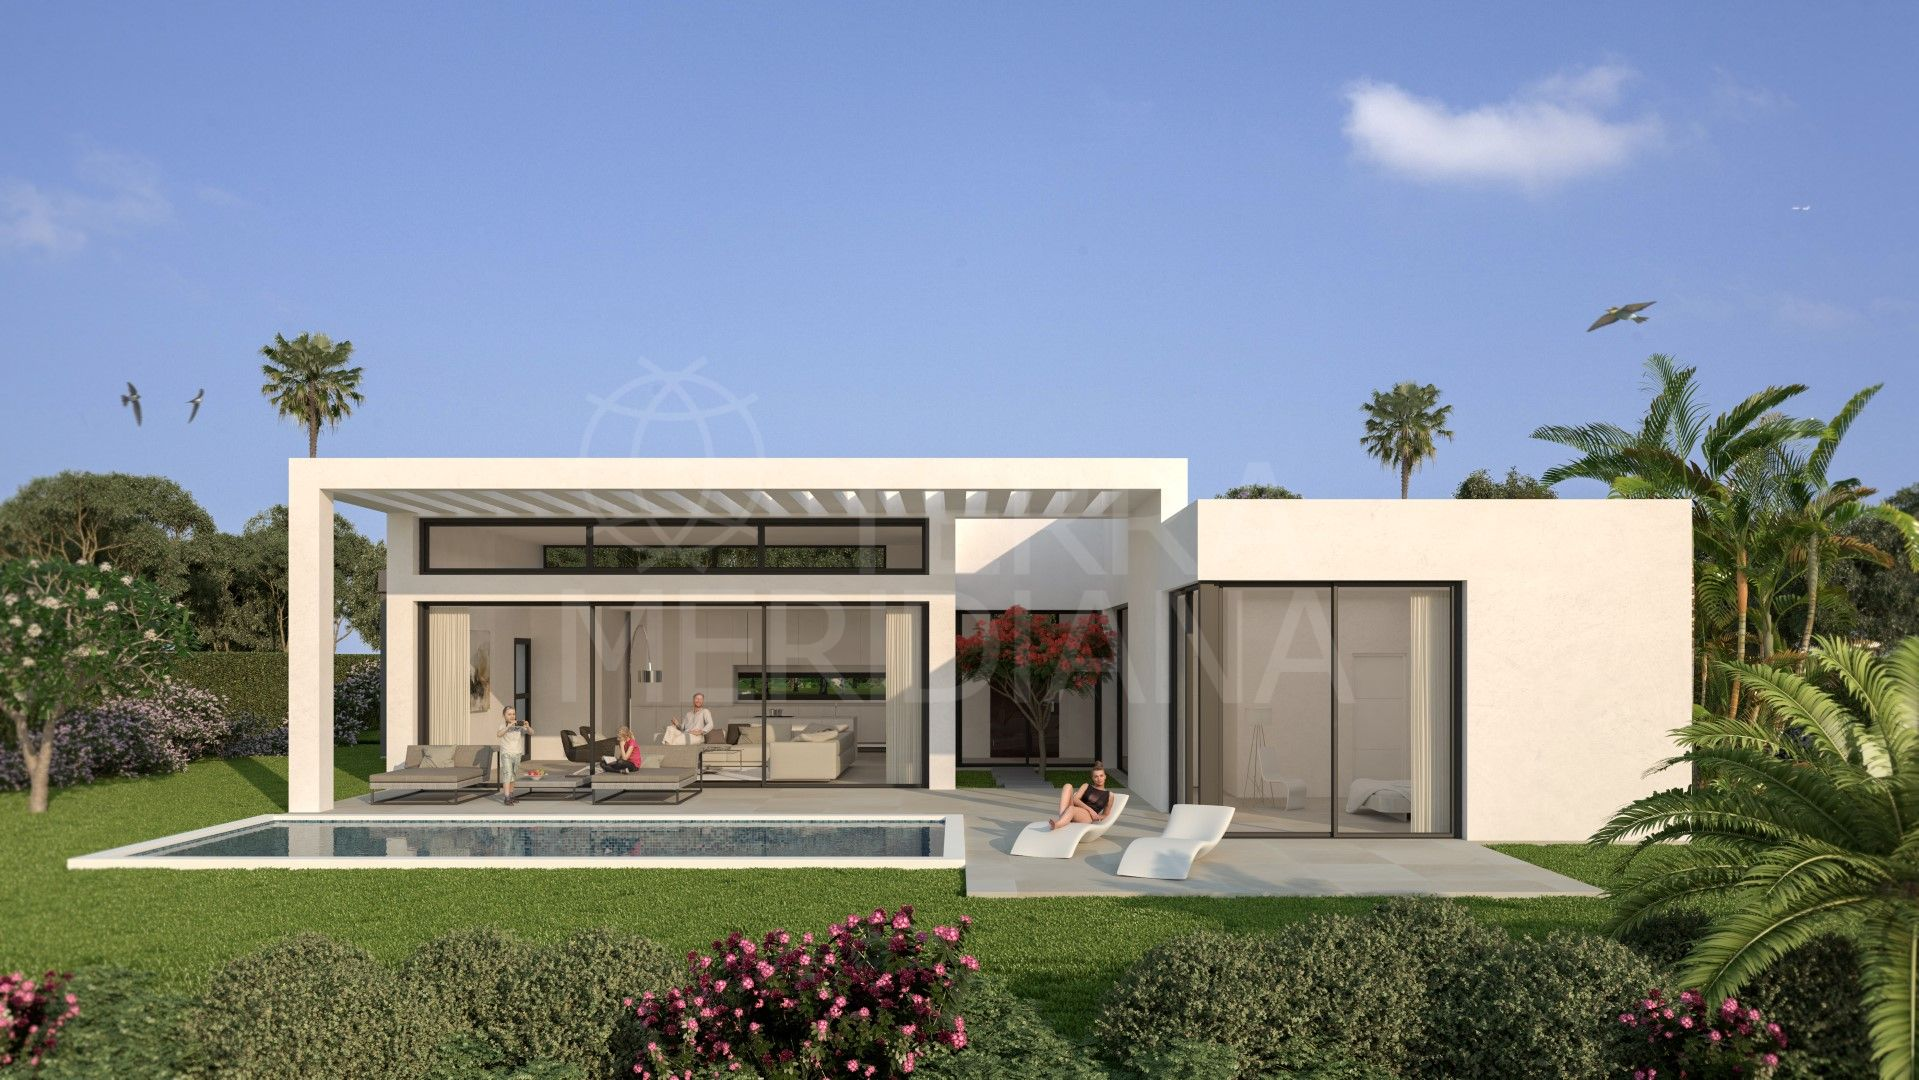 Arboleda Villas, Estepona - Complex of 18 modern villas walking distance from the beach and amenities in Atalaya, Estepona